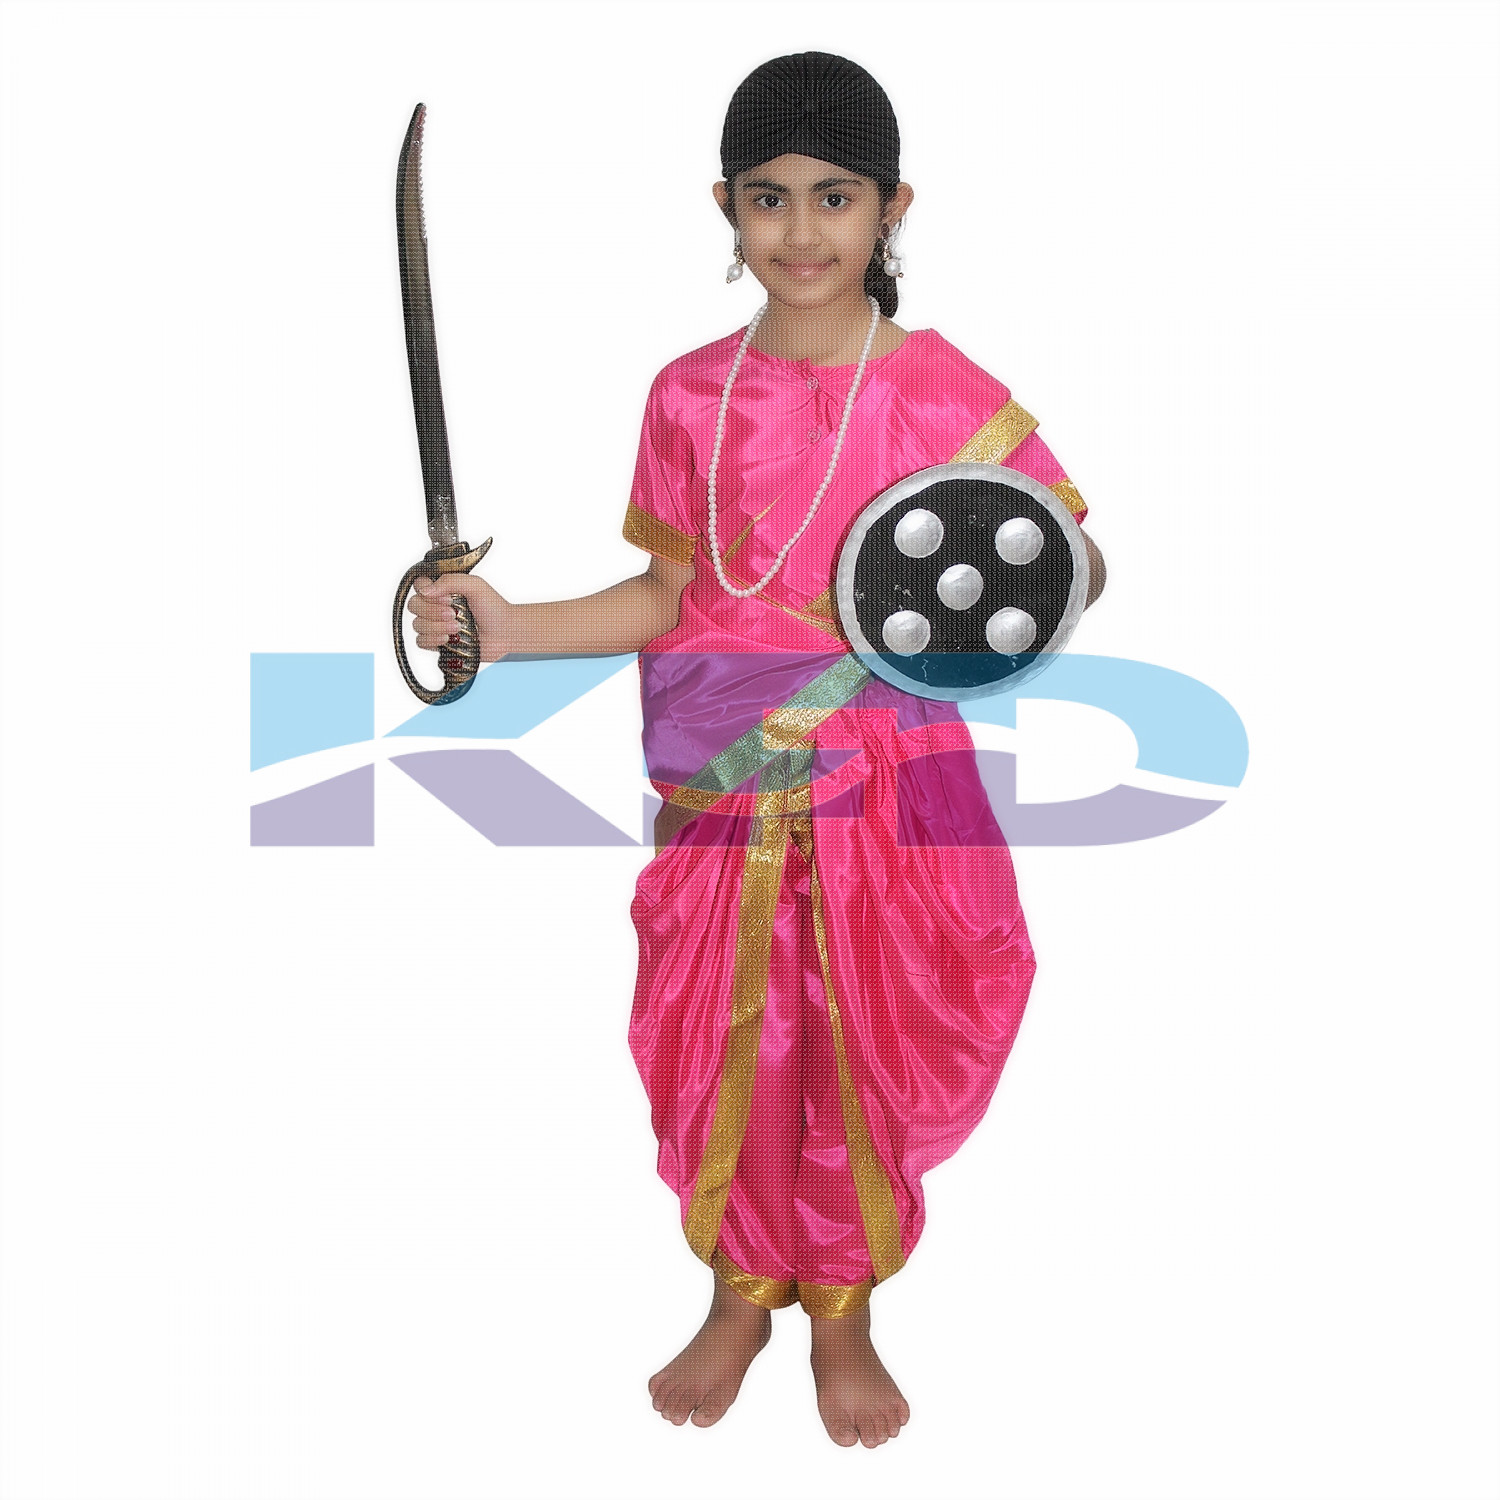 Rani Laxmi Bai Mazanta National Hero/freedom fighter Costume for Independence Day/Republic Day/Annual function/theme party/Competition/Stage Shows Dress